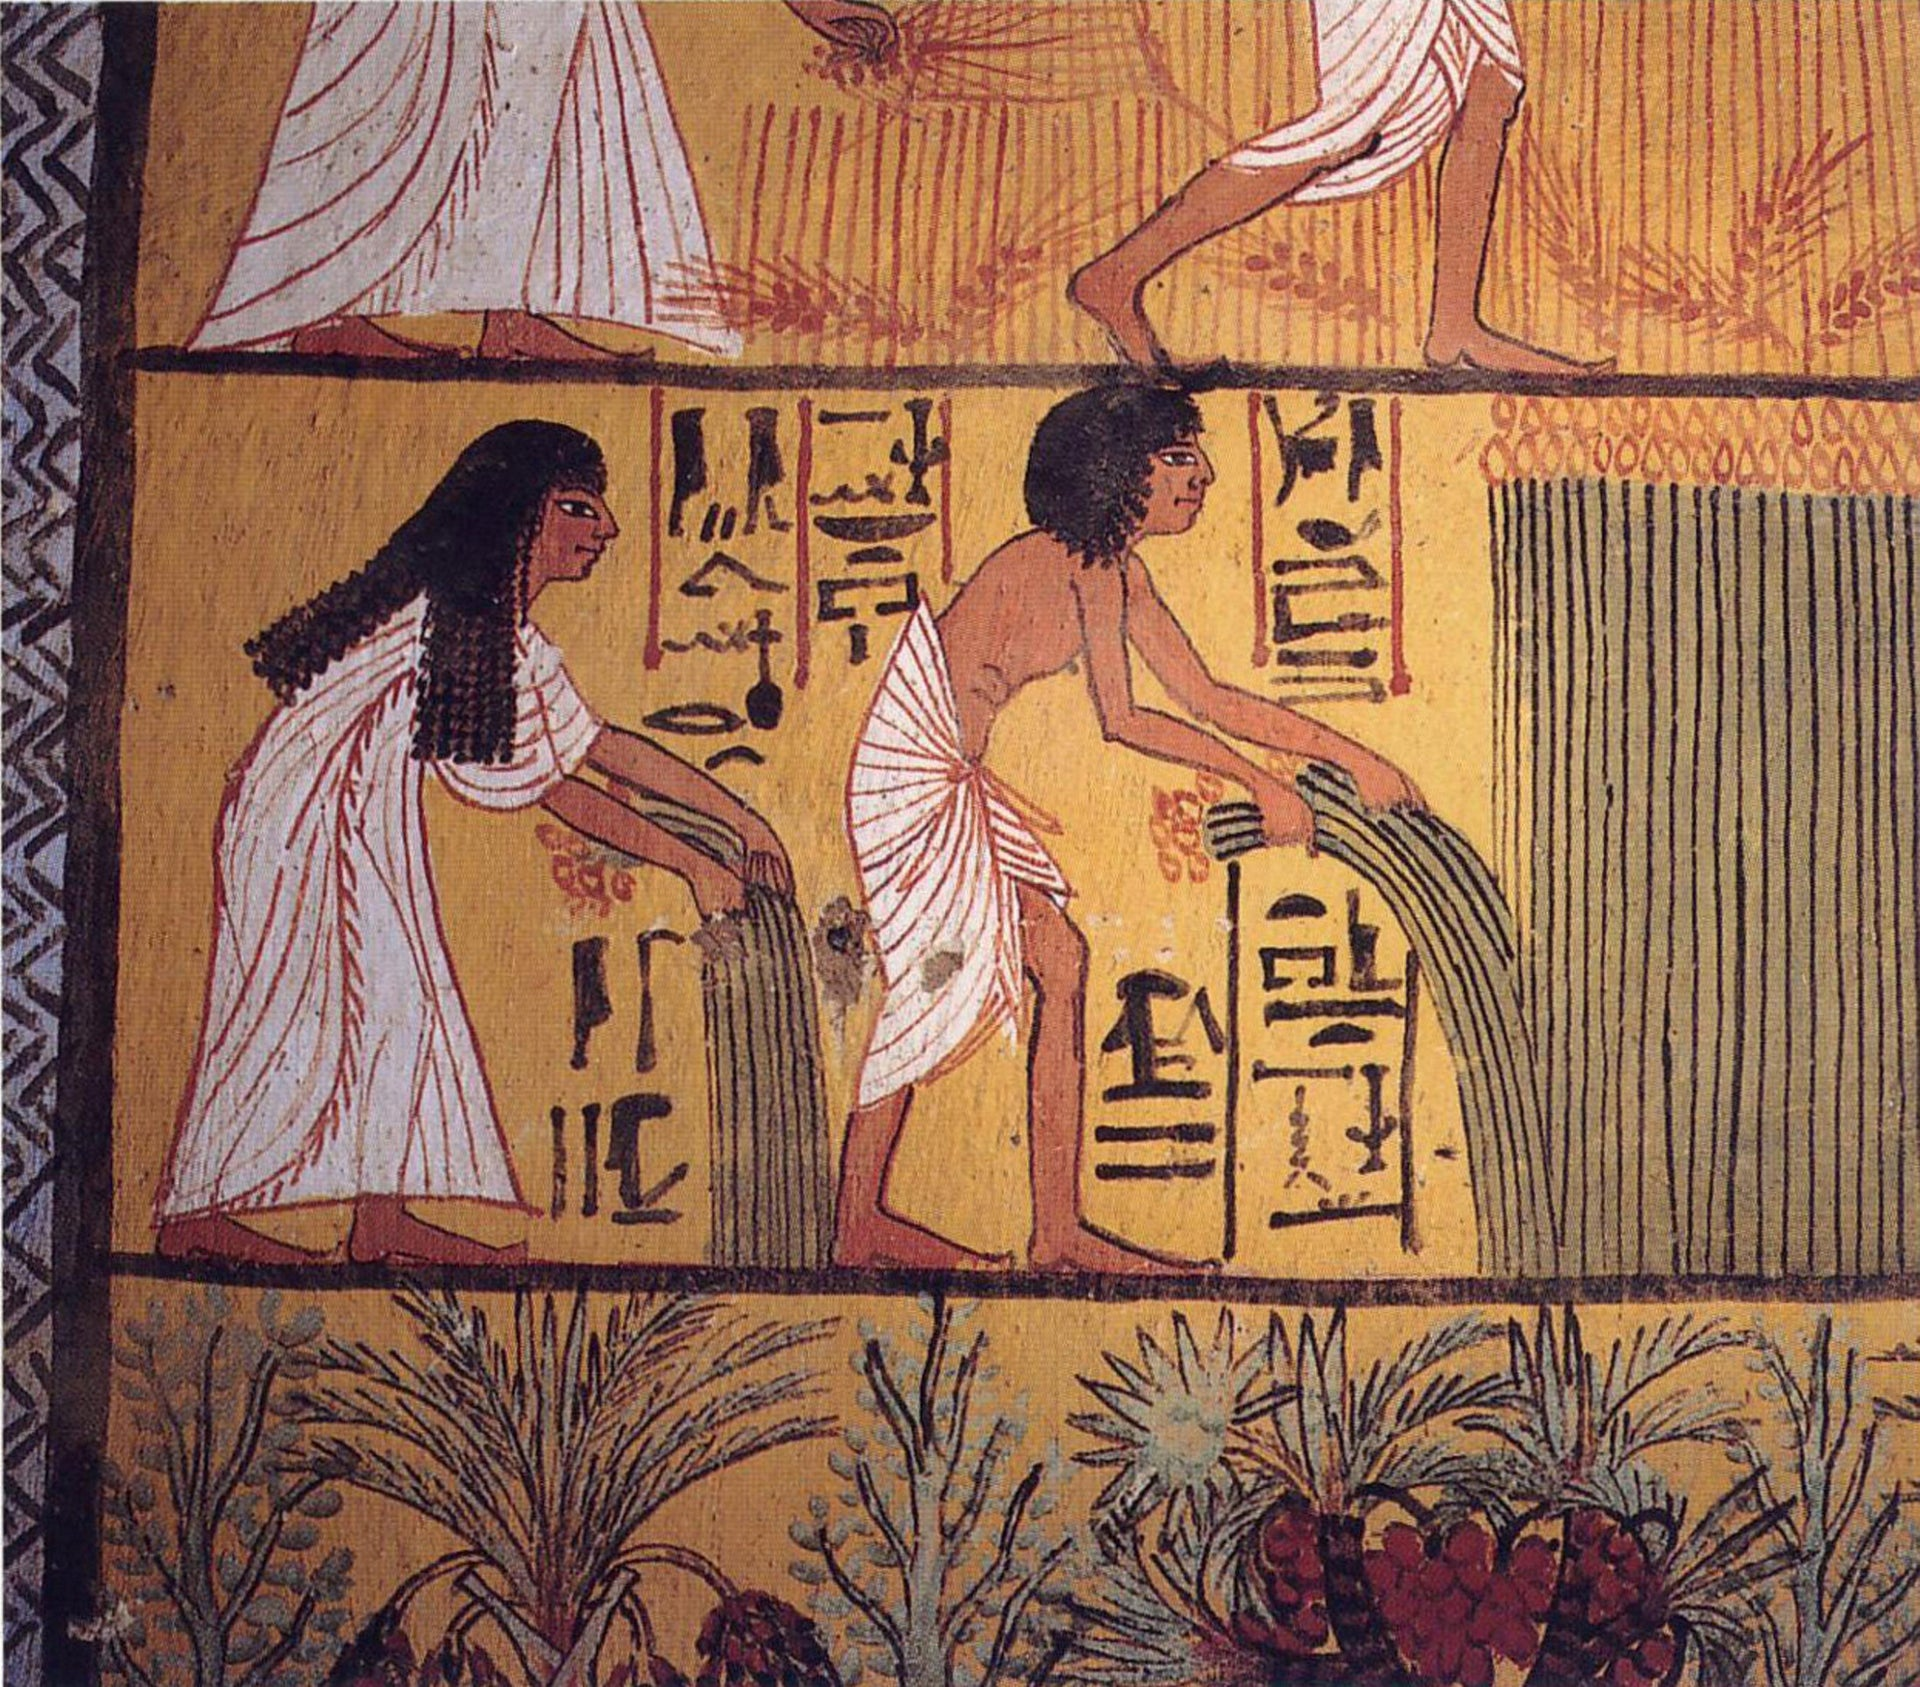 Hieroglyph shows a peasant couple harvesting papyrus, with pomegranate trees below.